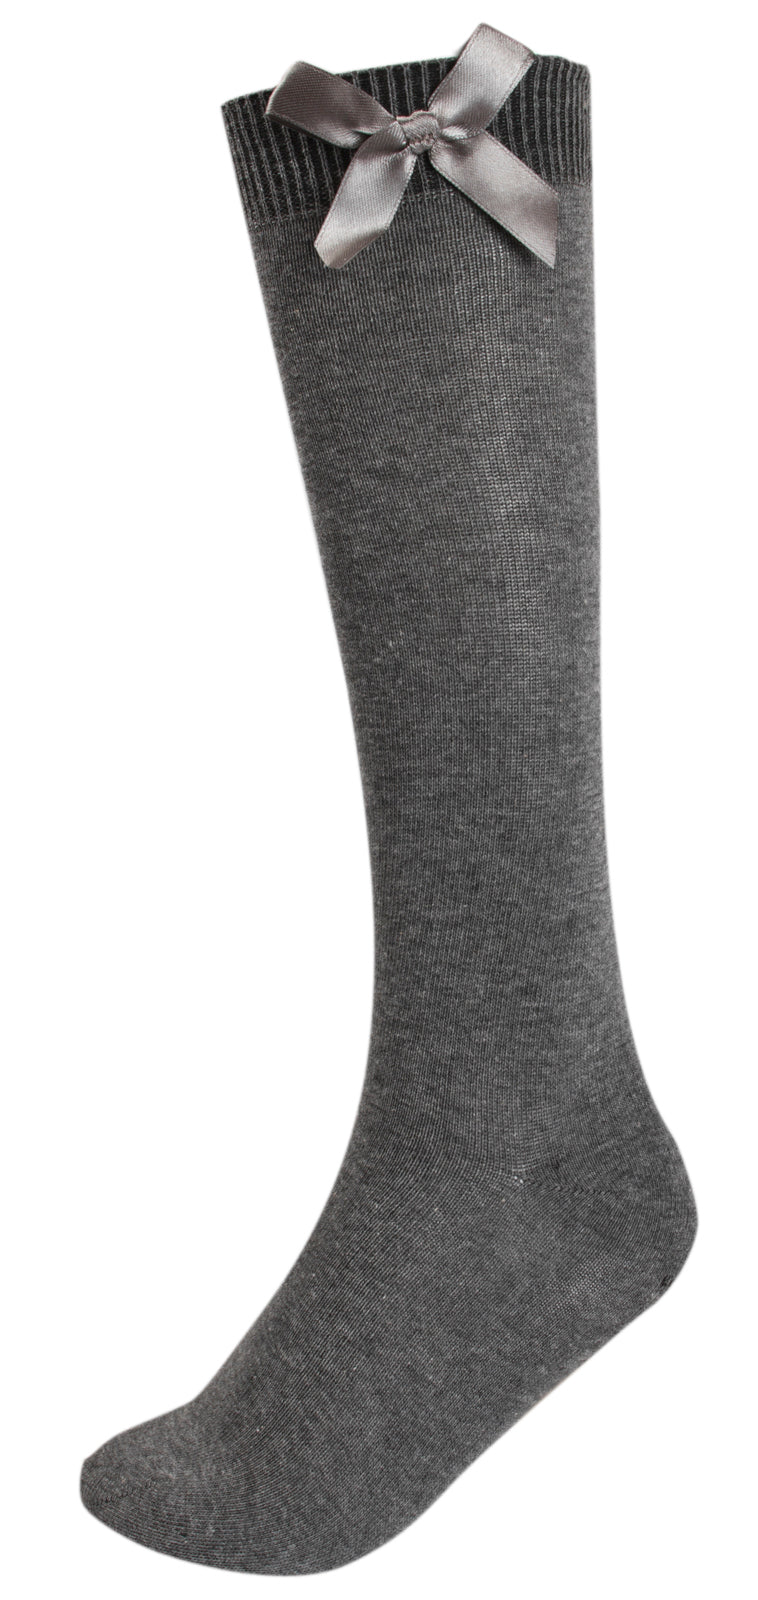 3 Pack Grey Knee High Socks With Bow